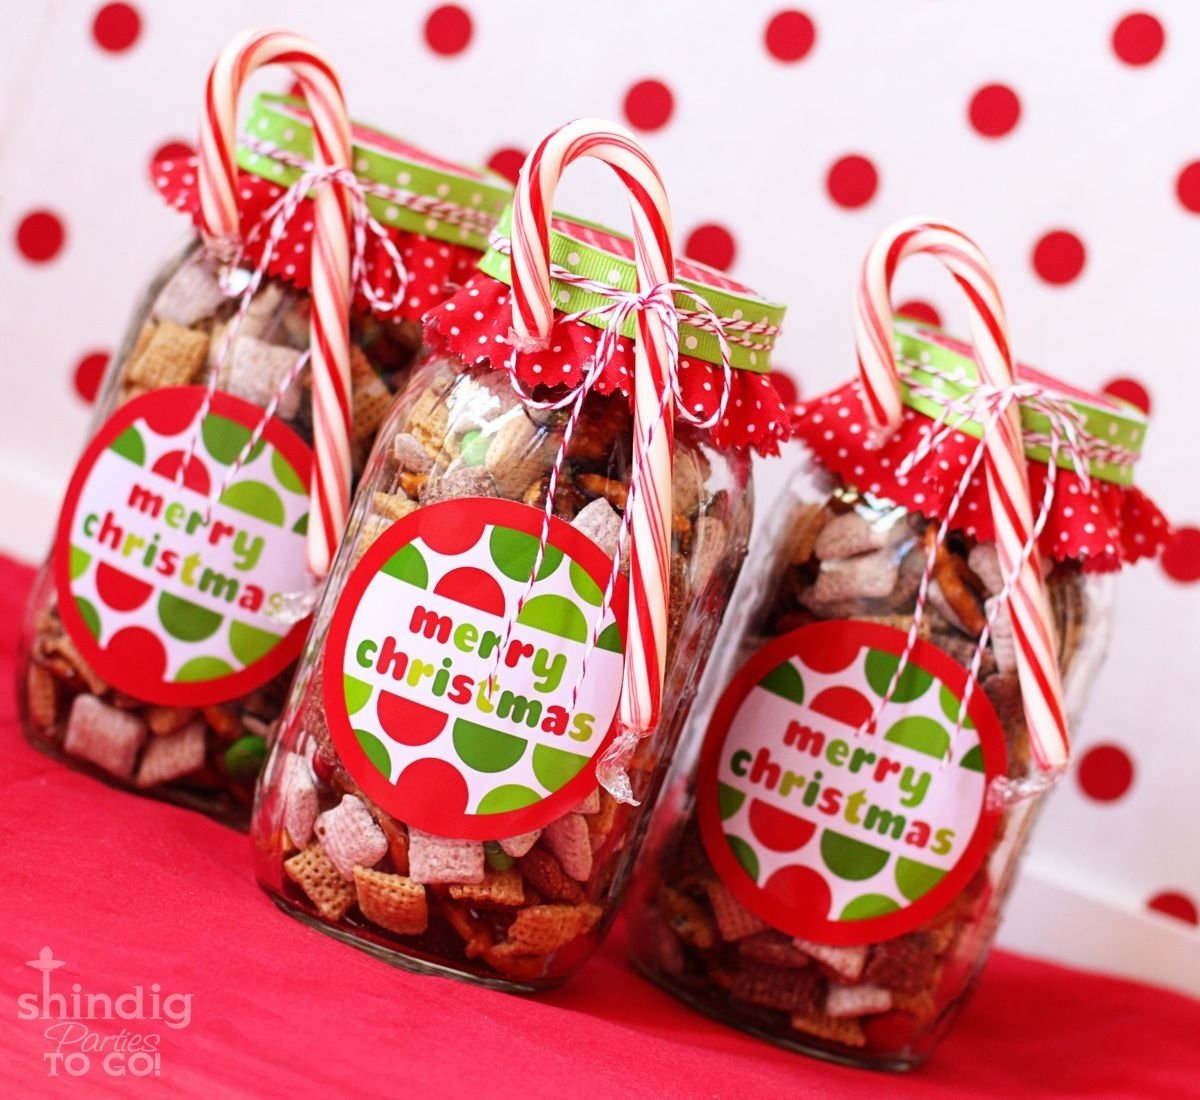 10 Fantastic Ideas For Christmas Gifts To Make amandas parties to go free merry christmas tags and gift idea 4 2021